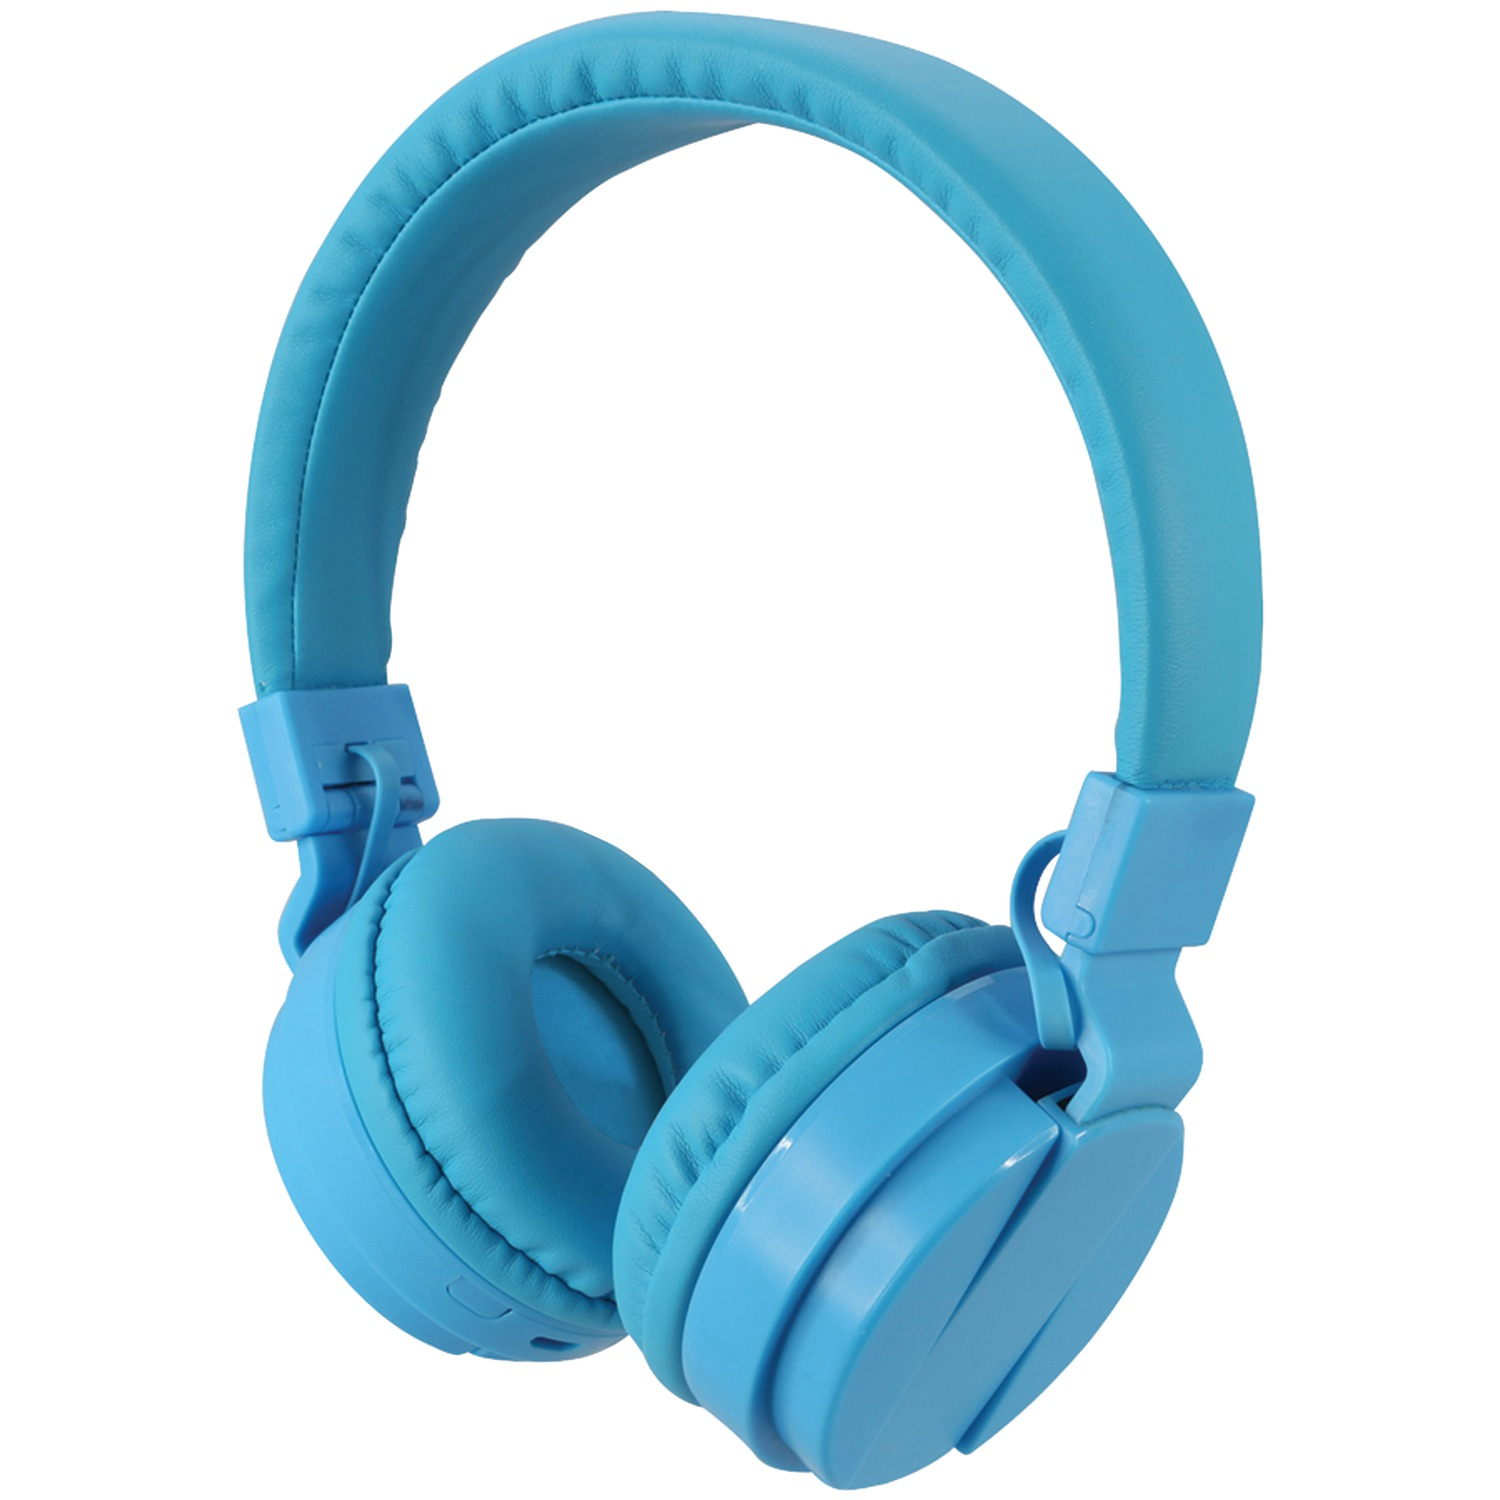 ilive iahb6bu bluetooth r wireless headphones with microphone blue. Black Bedroom Furniture Sets. Home Design Ideas